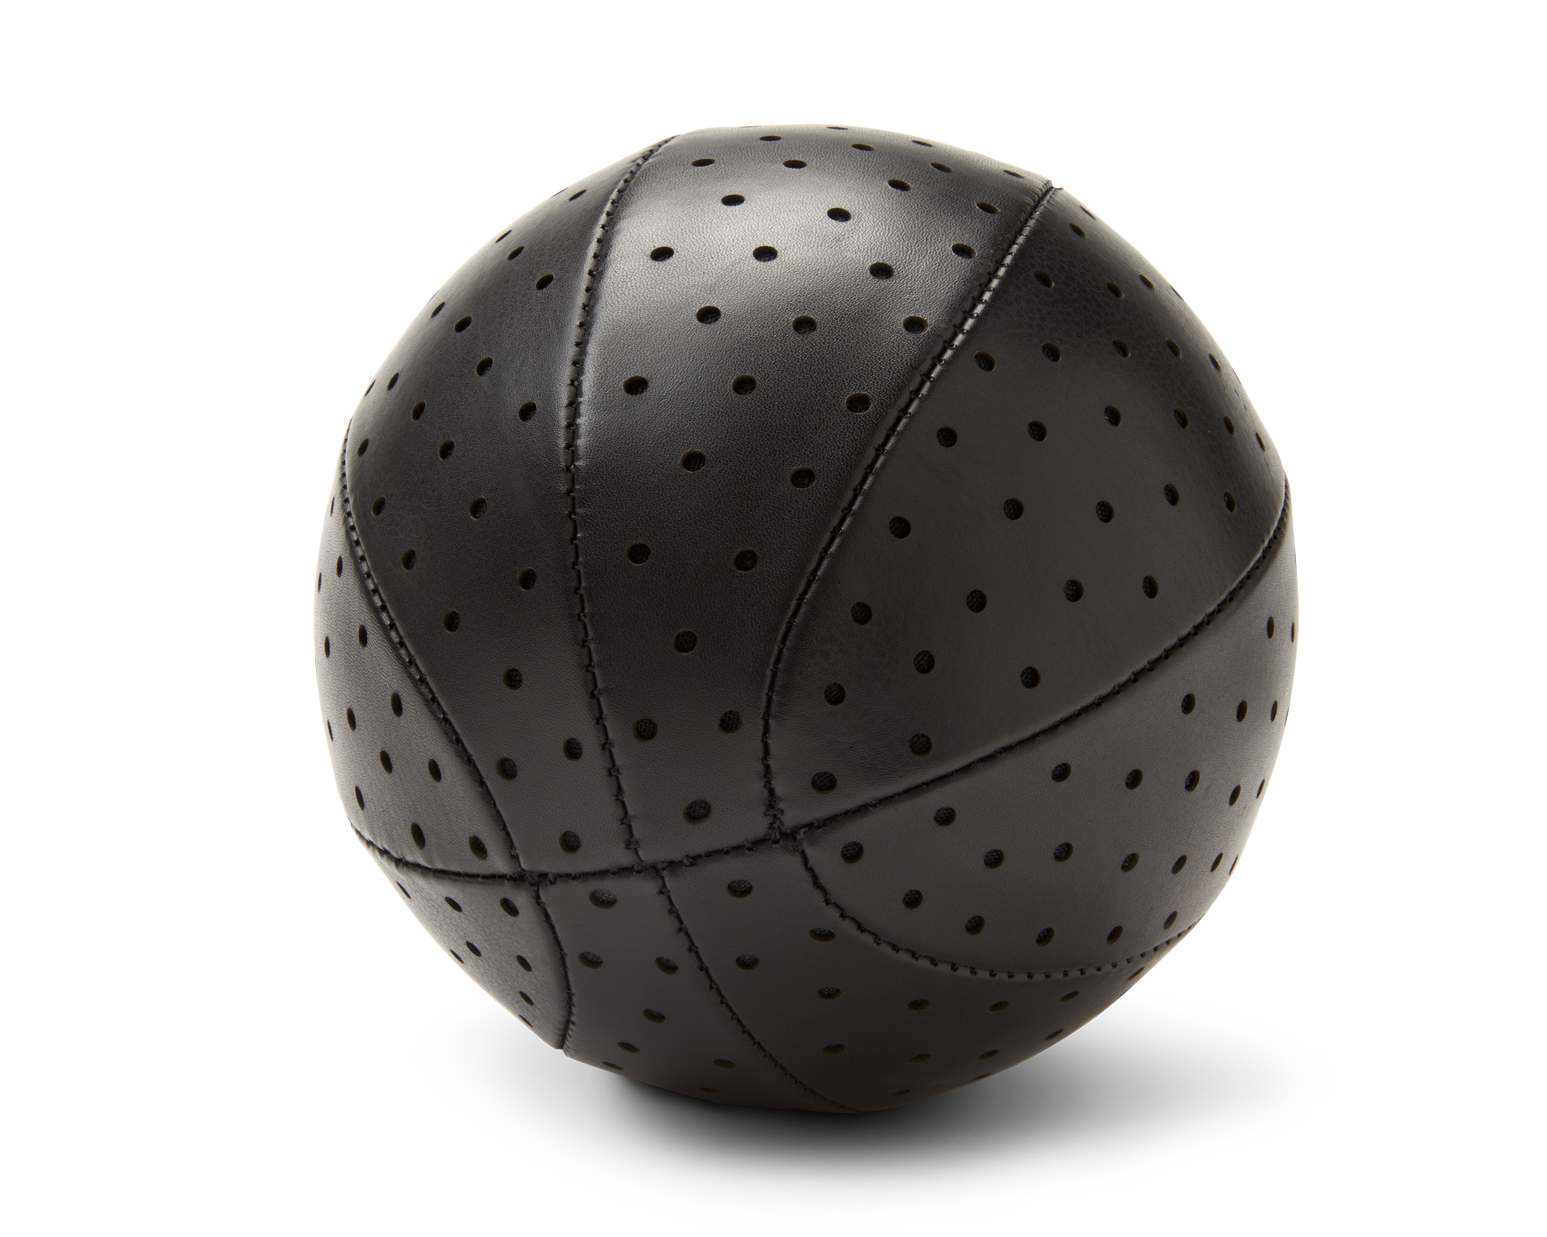 INDOOR MINI BASKETBALL | KILLSPENCER® - Black Perforated Leather